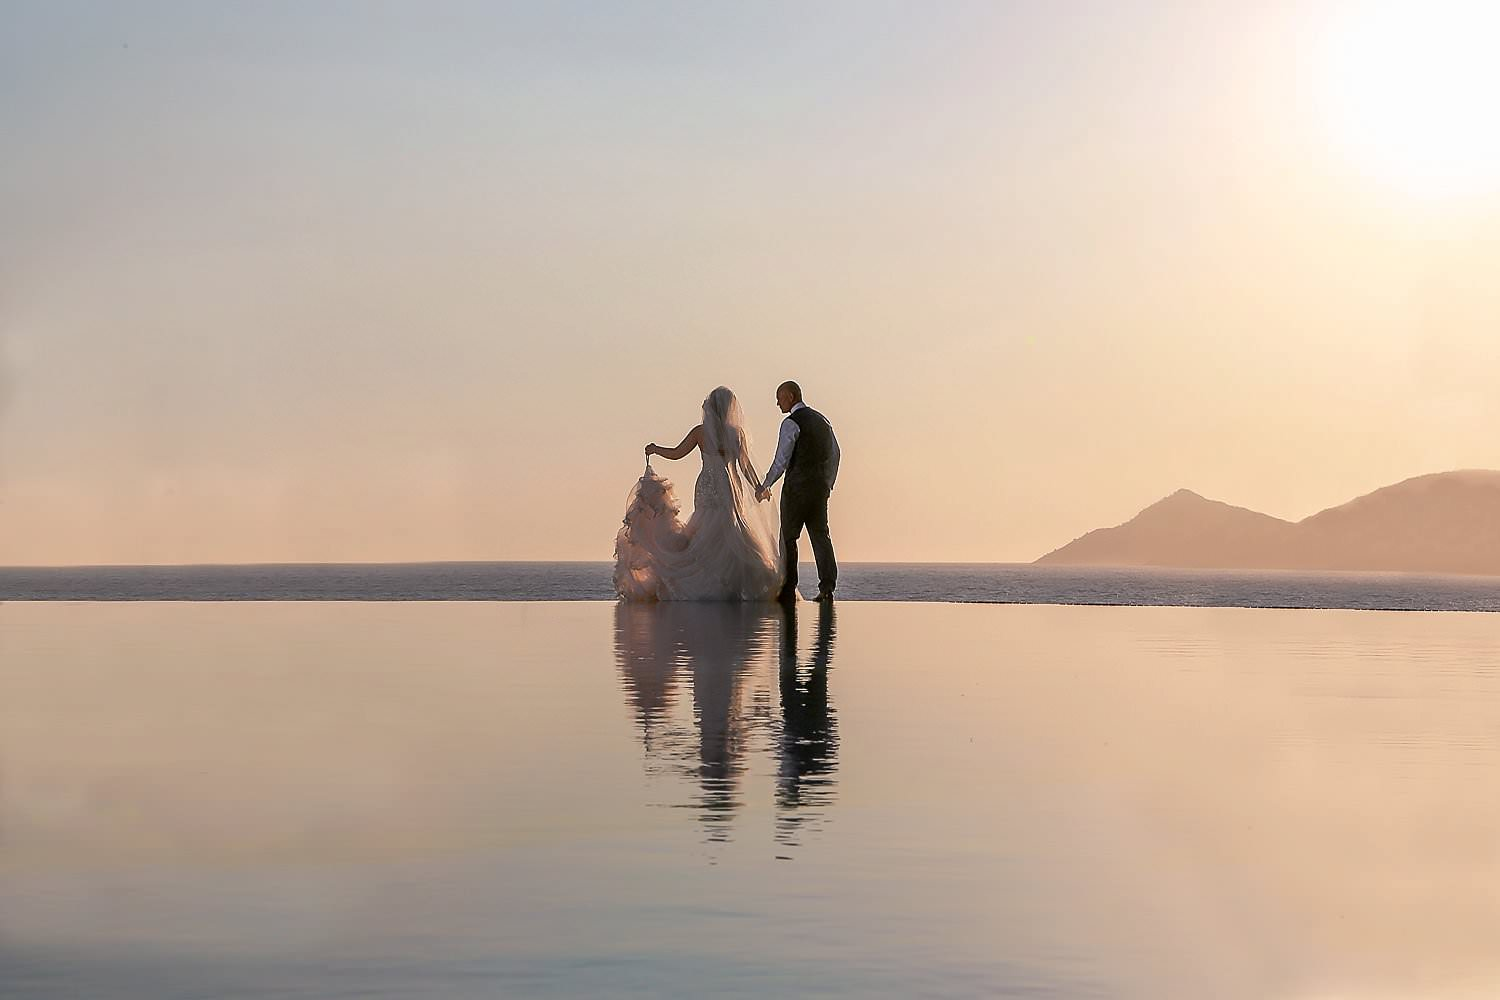 Bride and groom standing on water, infinity pool at sunset